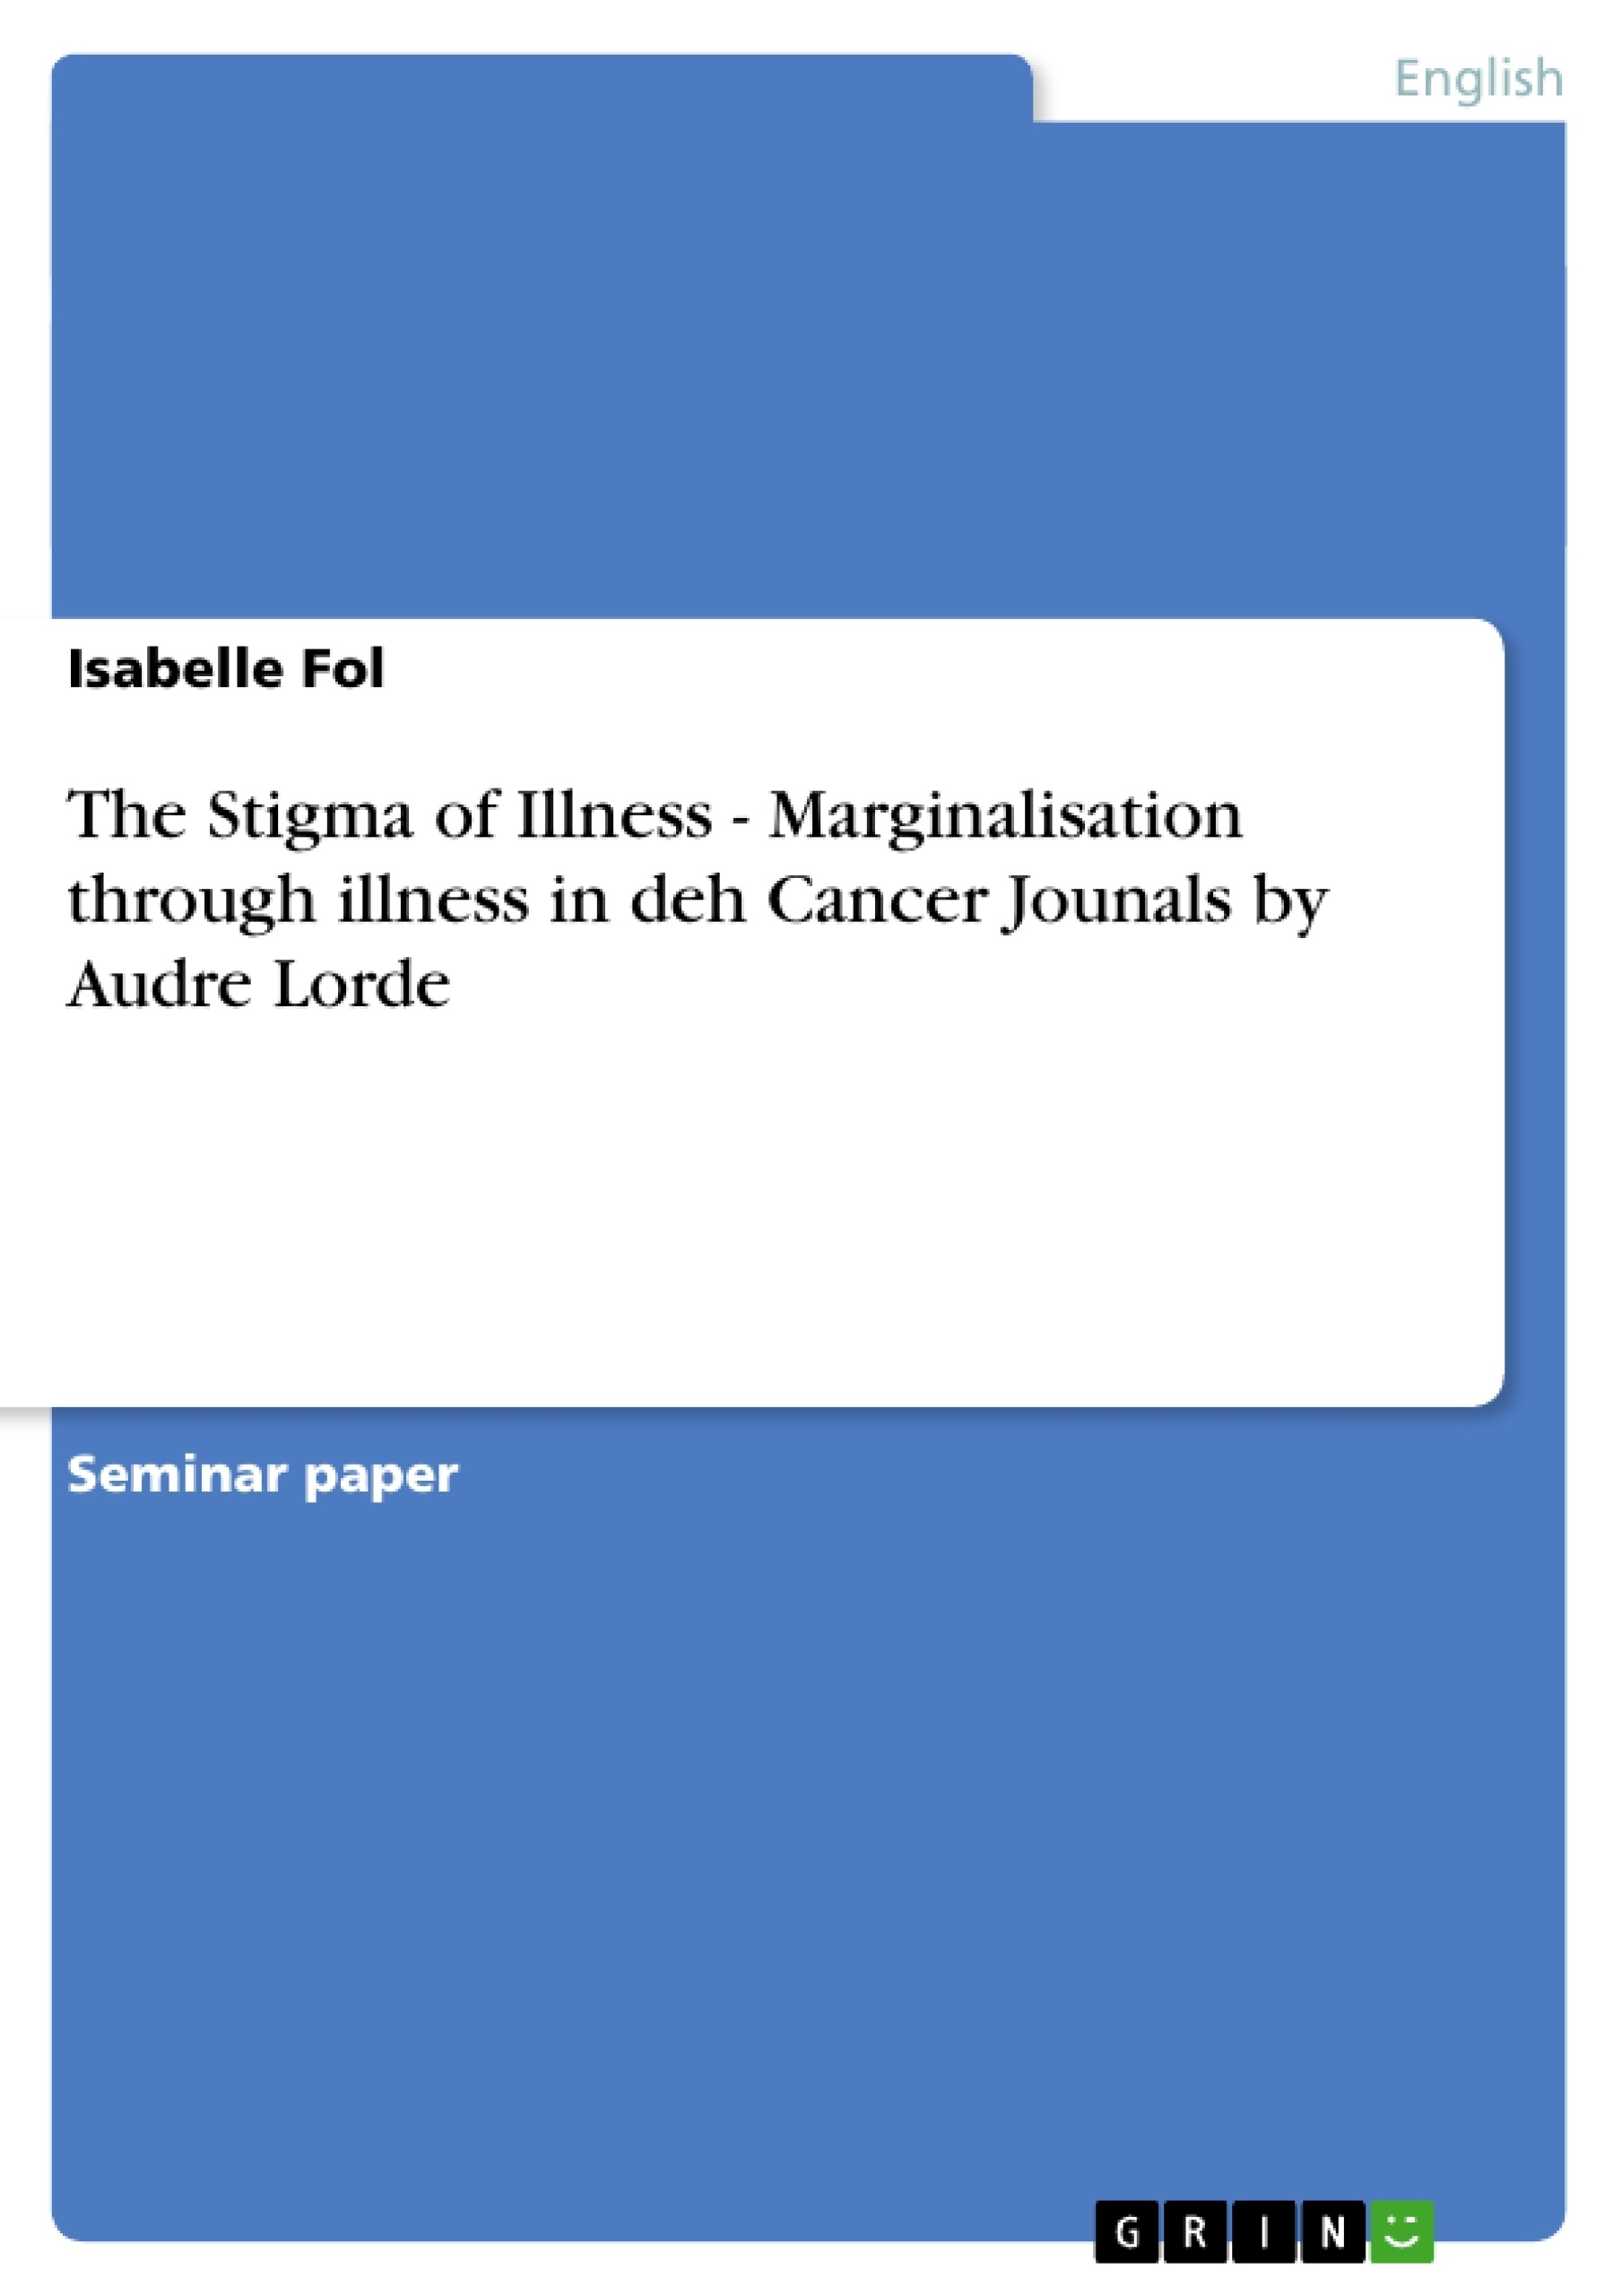 Title: The Stigma of Illness - Marginalisation through illness in deh Cancer Jounals by Audre Lorde